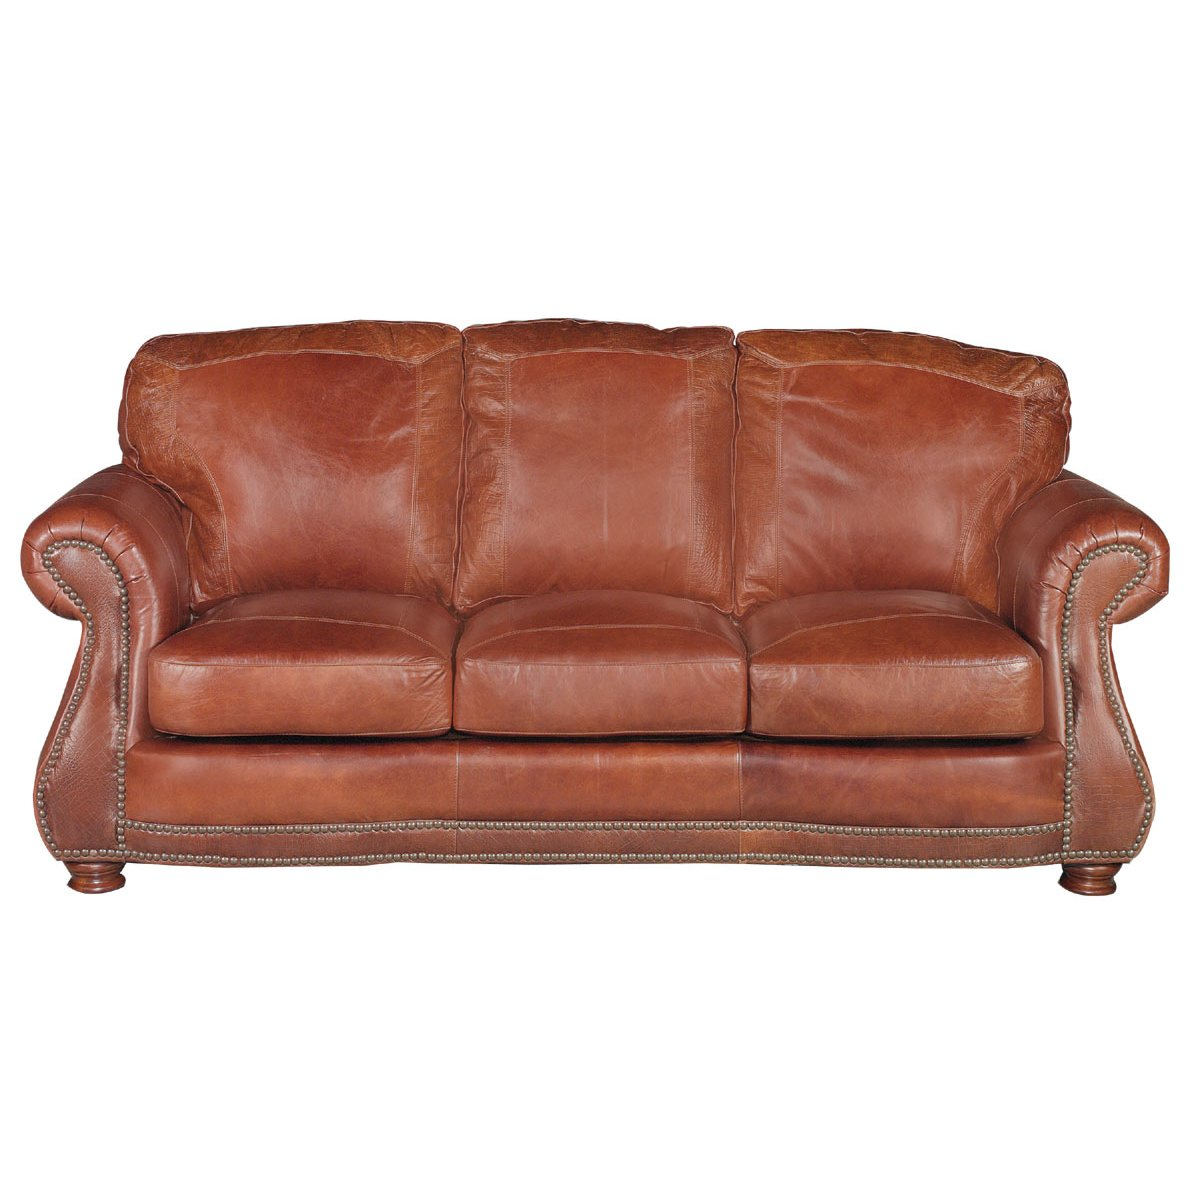 Brown Real Leather Couch Traditional Brandy Brown Leather Sofa Brandy